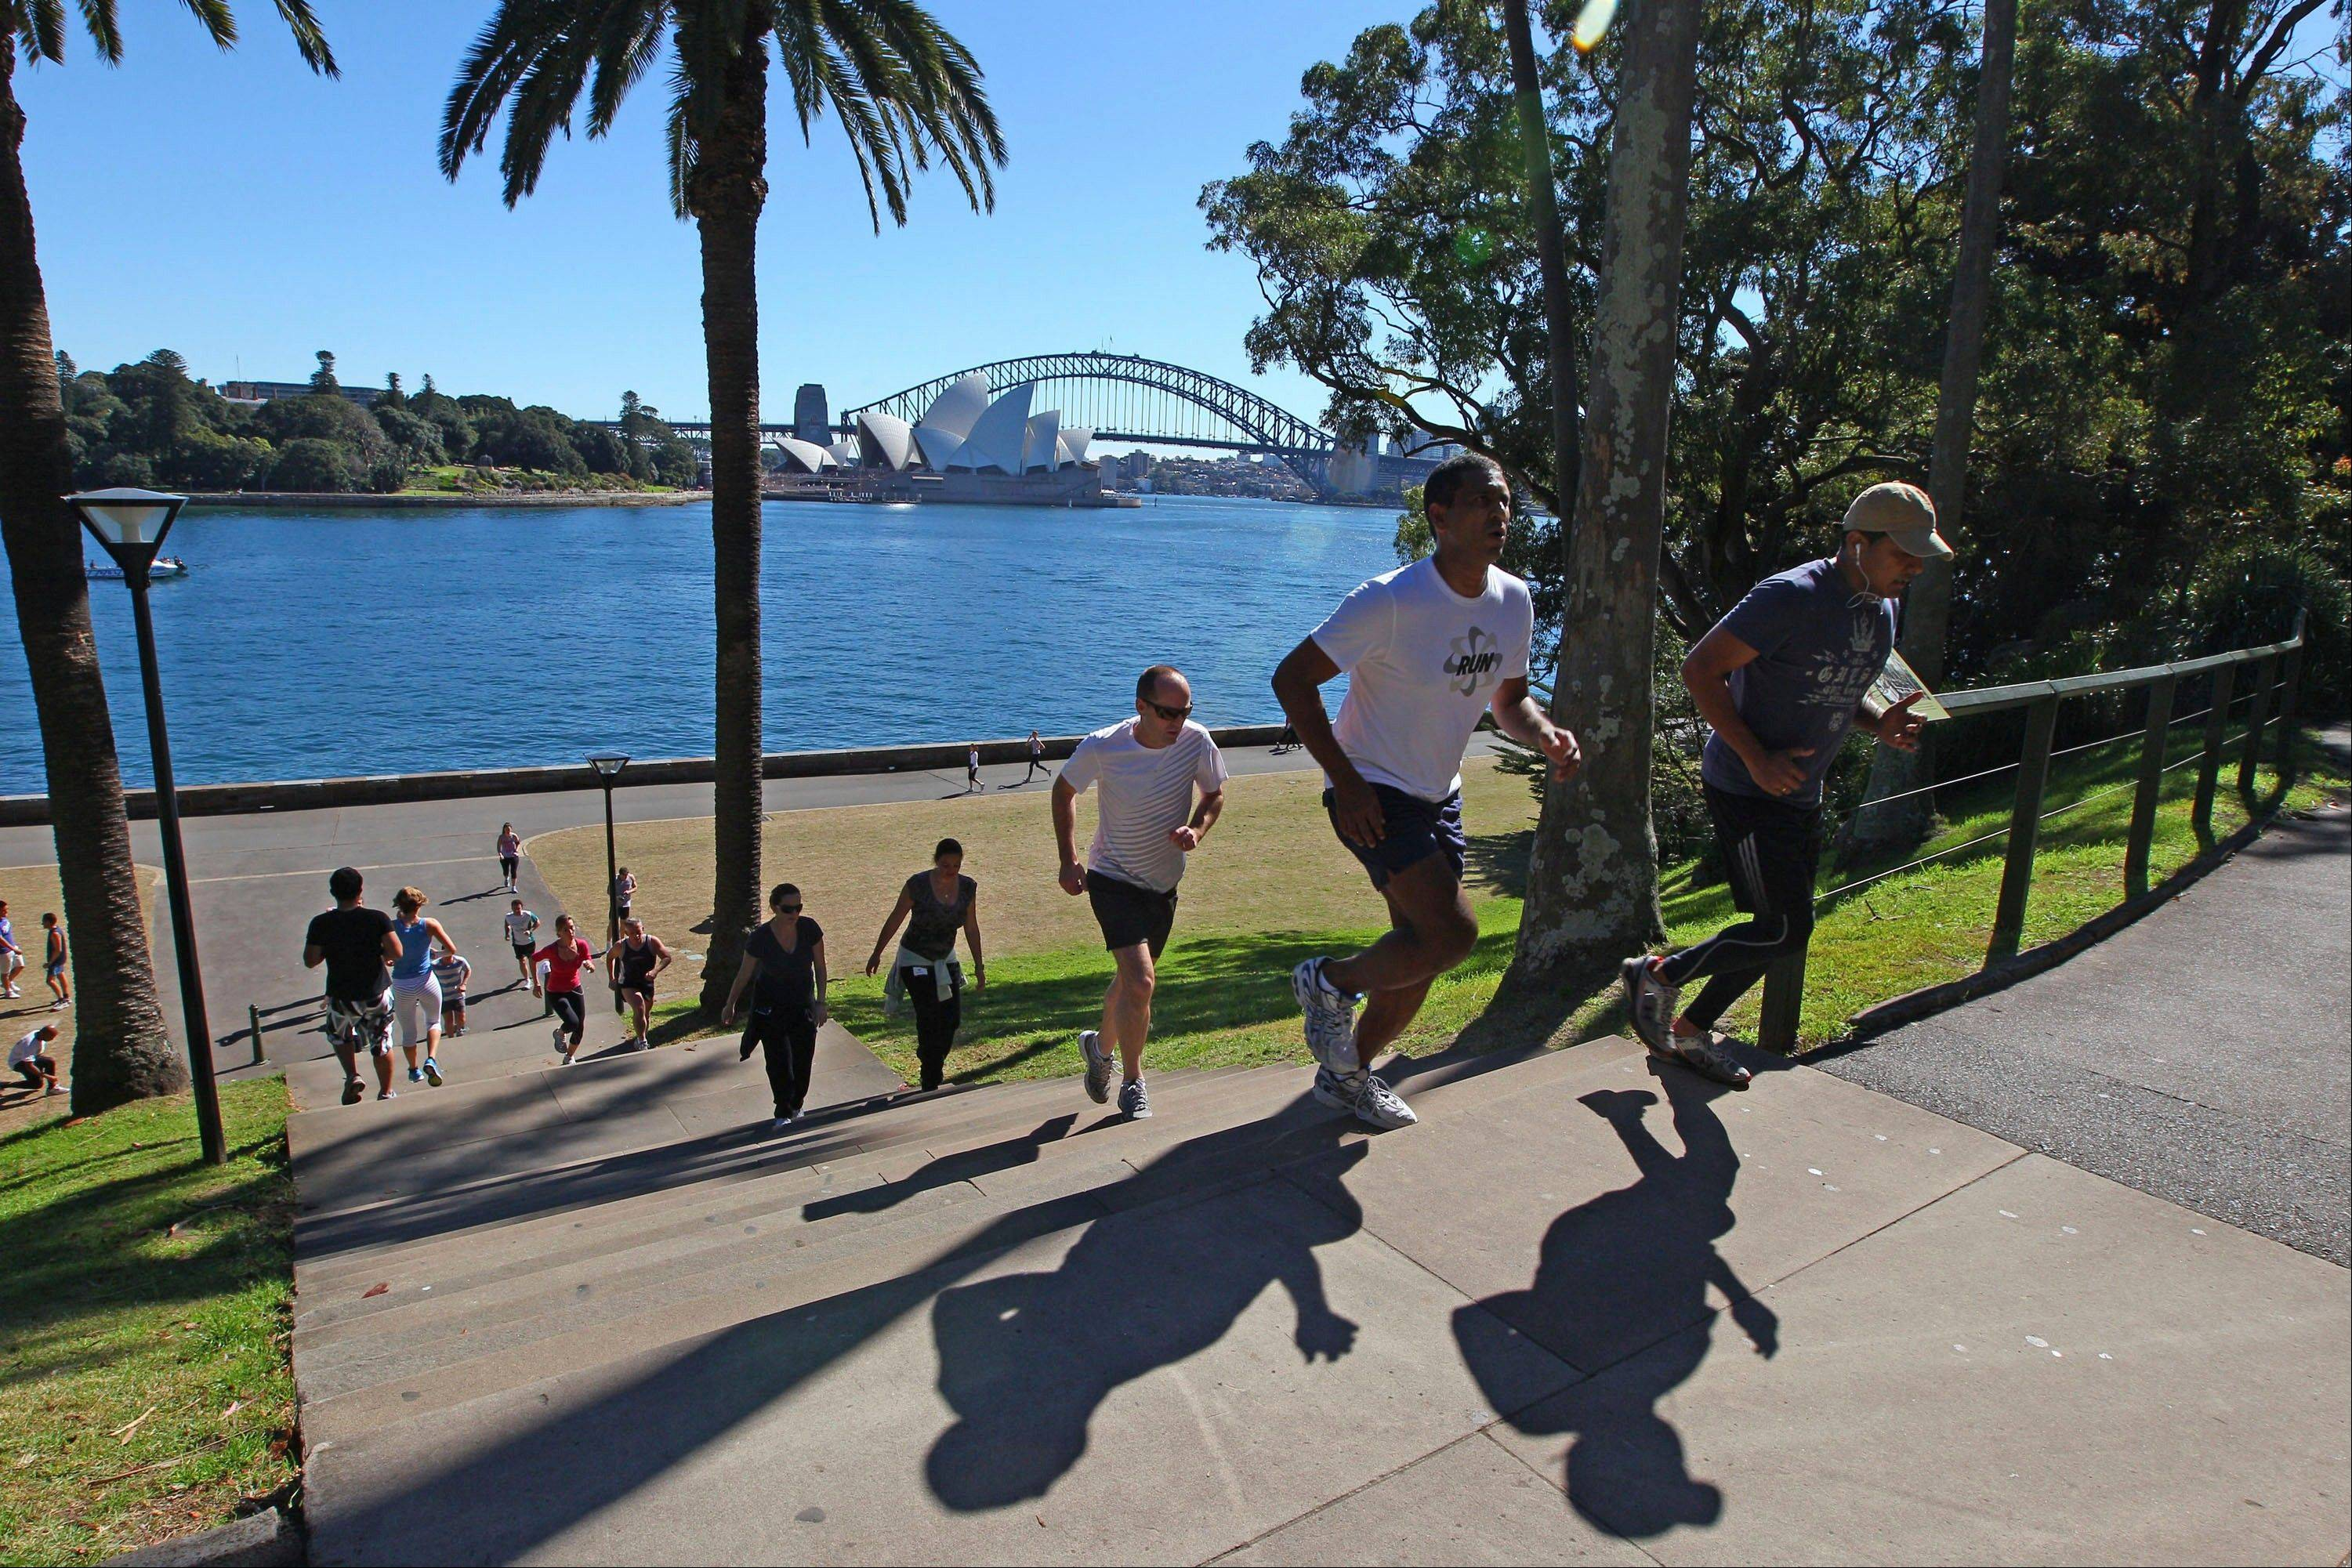 People run up and down stairs in a park adjacent to the Sydney Opera House and Harbour Bridge in Sydney.